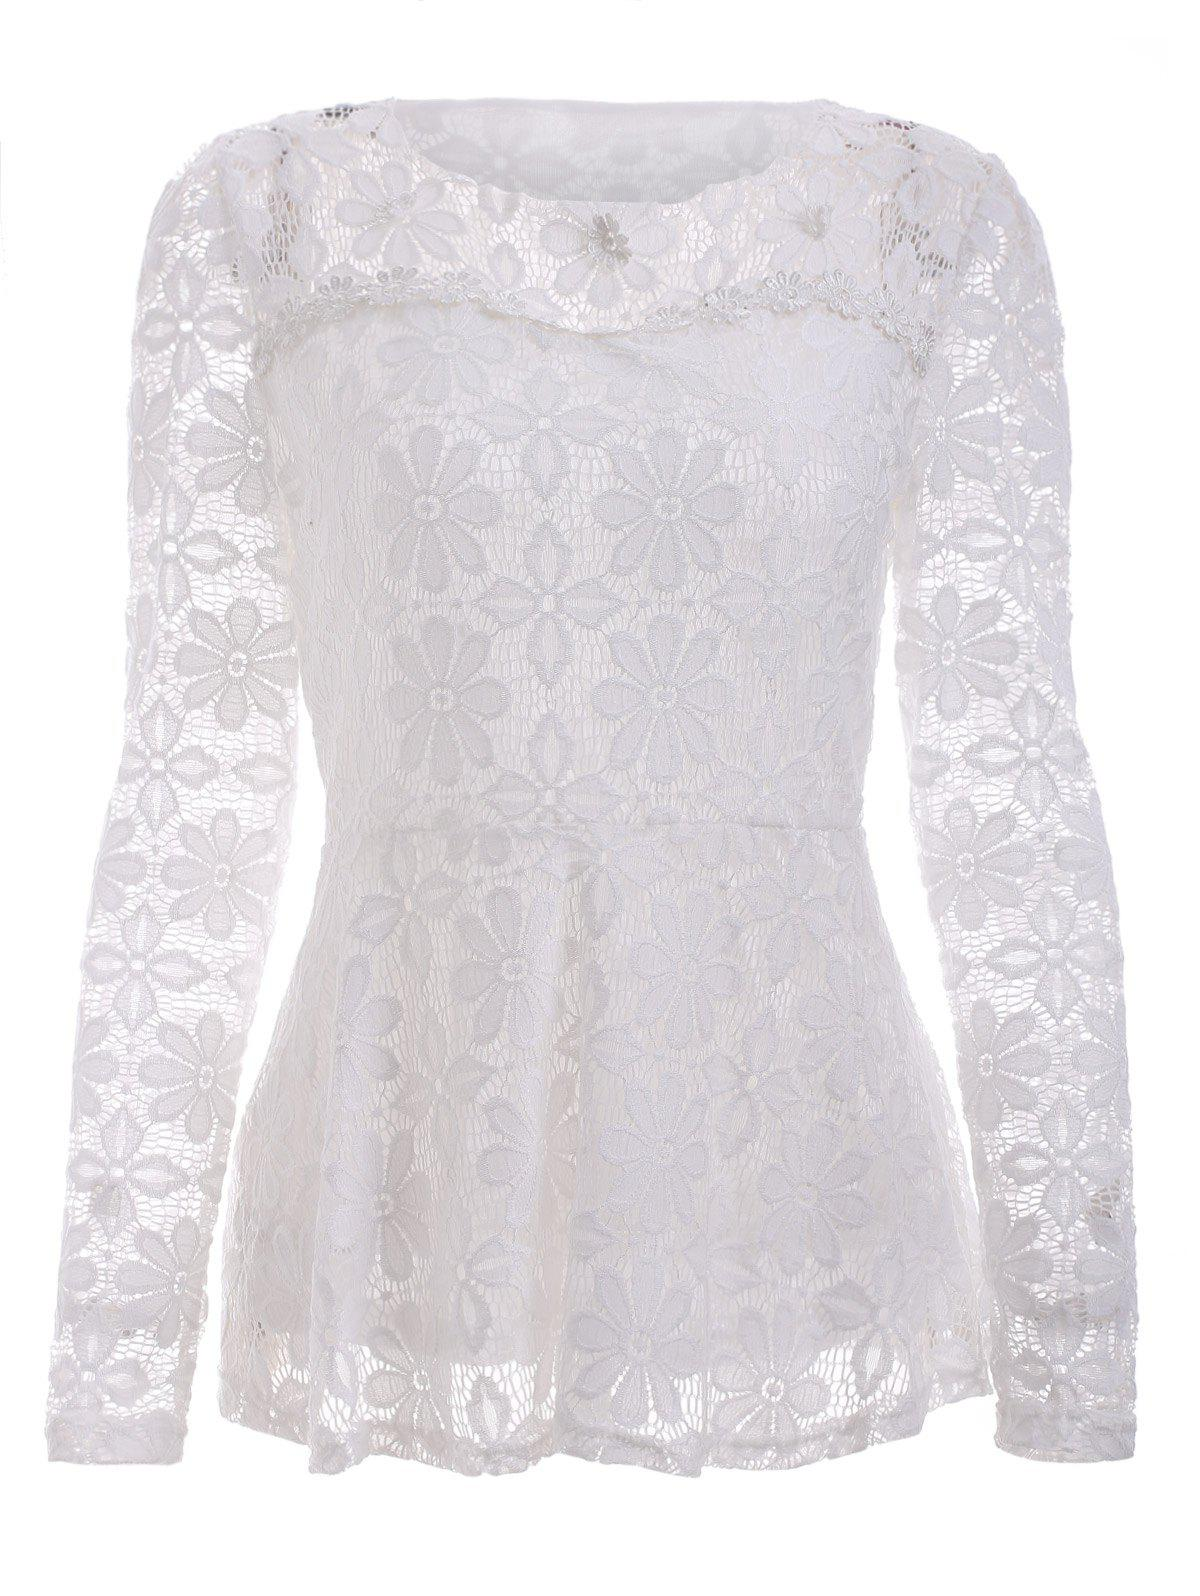 Trendy Long Sleeve Floral Embroidered White Lace Blouse